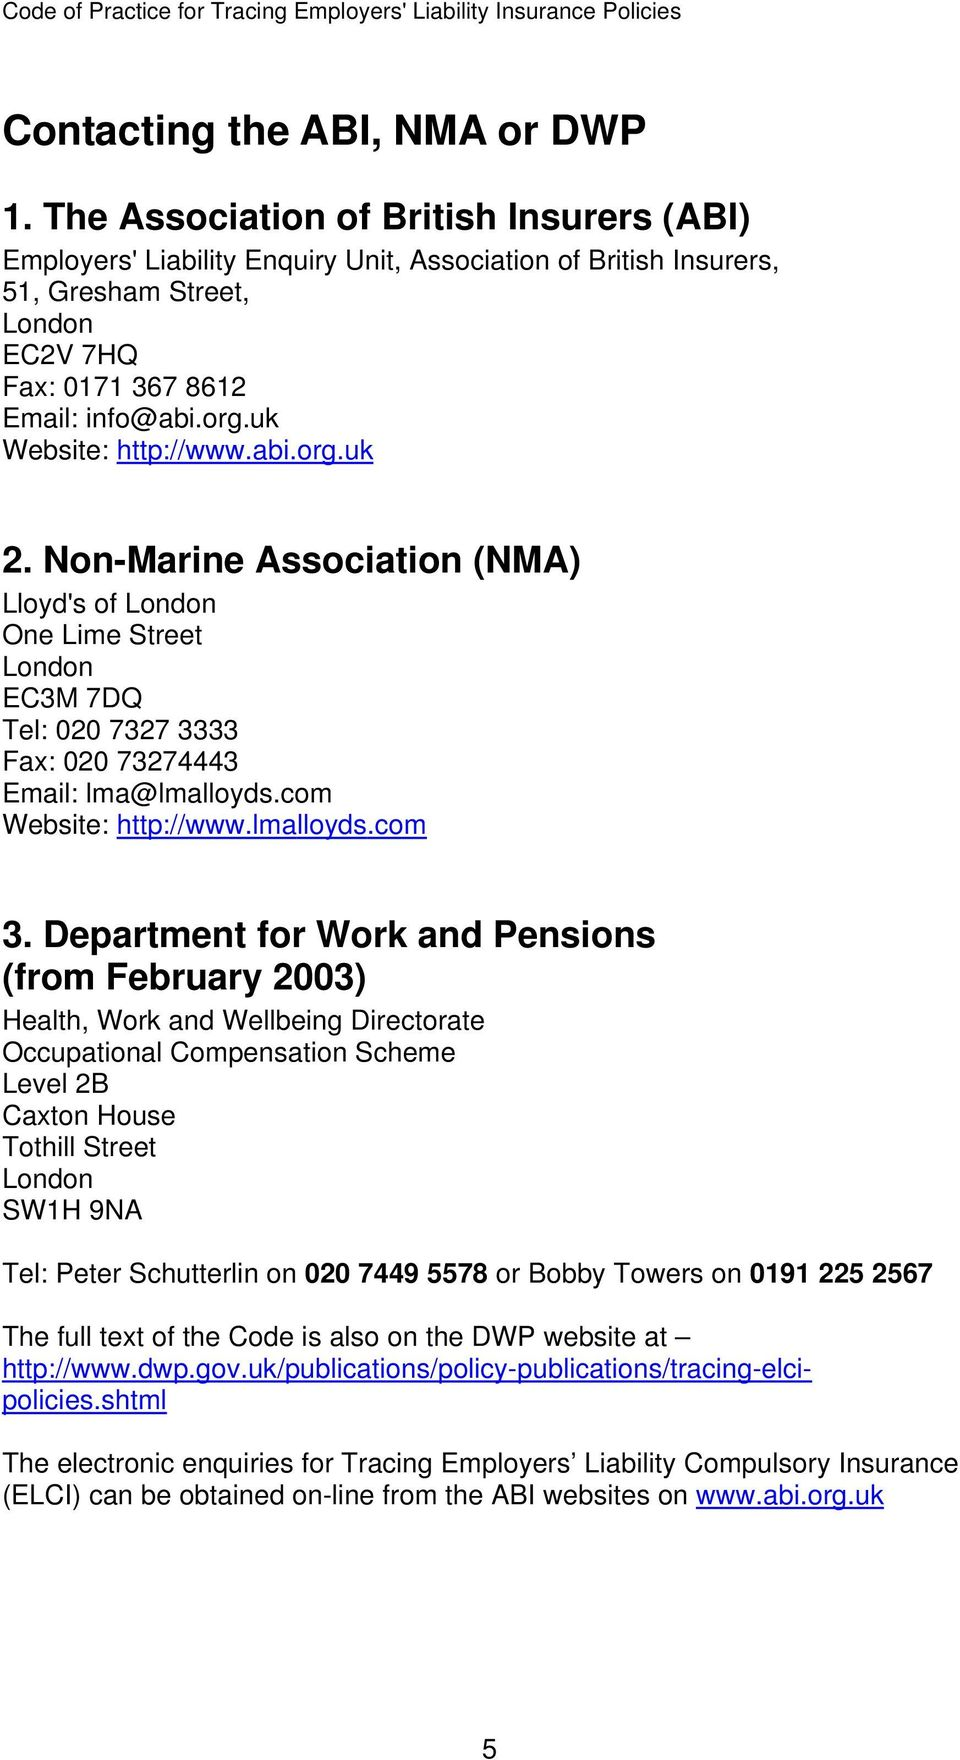 uk Website: http://www.abi.org.uk 2. Non-Marine Association (NMA) Lloyd's of London One Lime Street London EC3M 7DQ Tel: 020 7327 3333 Fax: 020 73274443 Email: lma@lmalloyds.com Website: http://www.